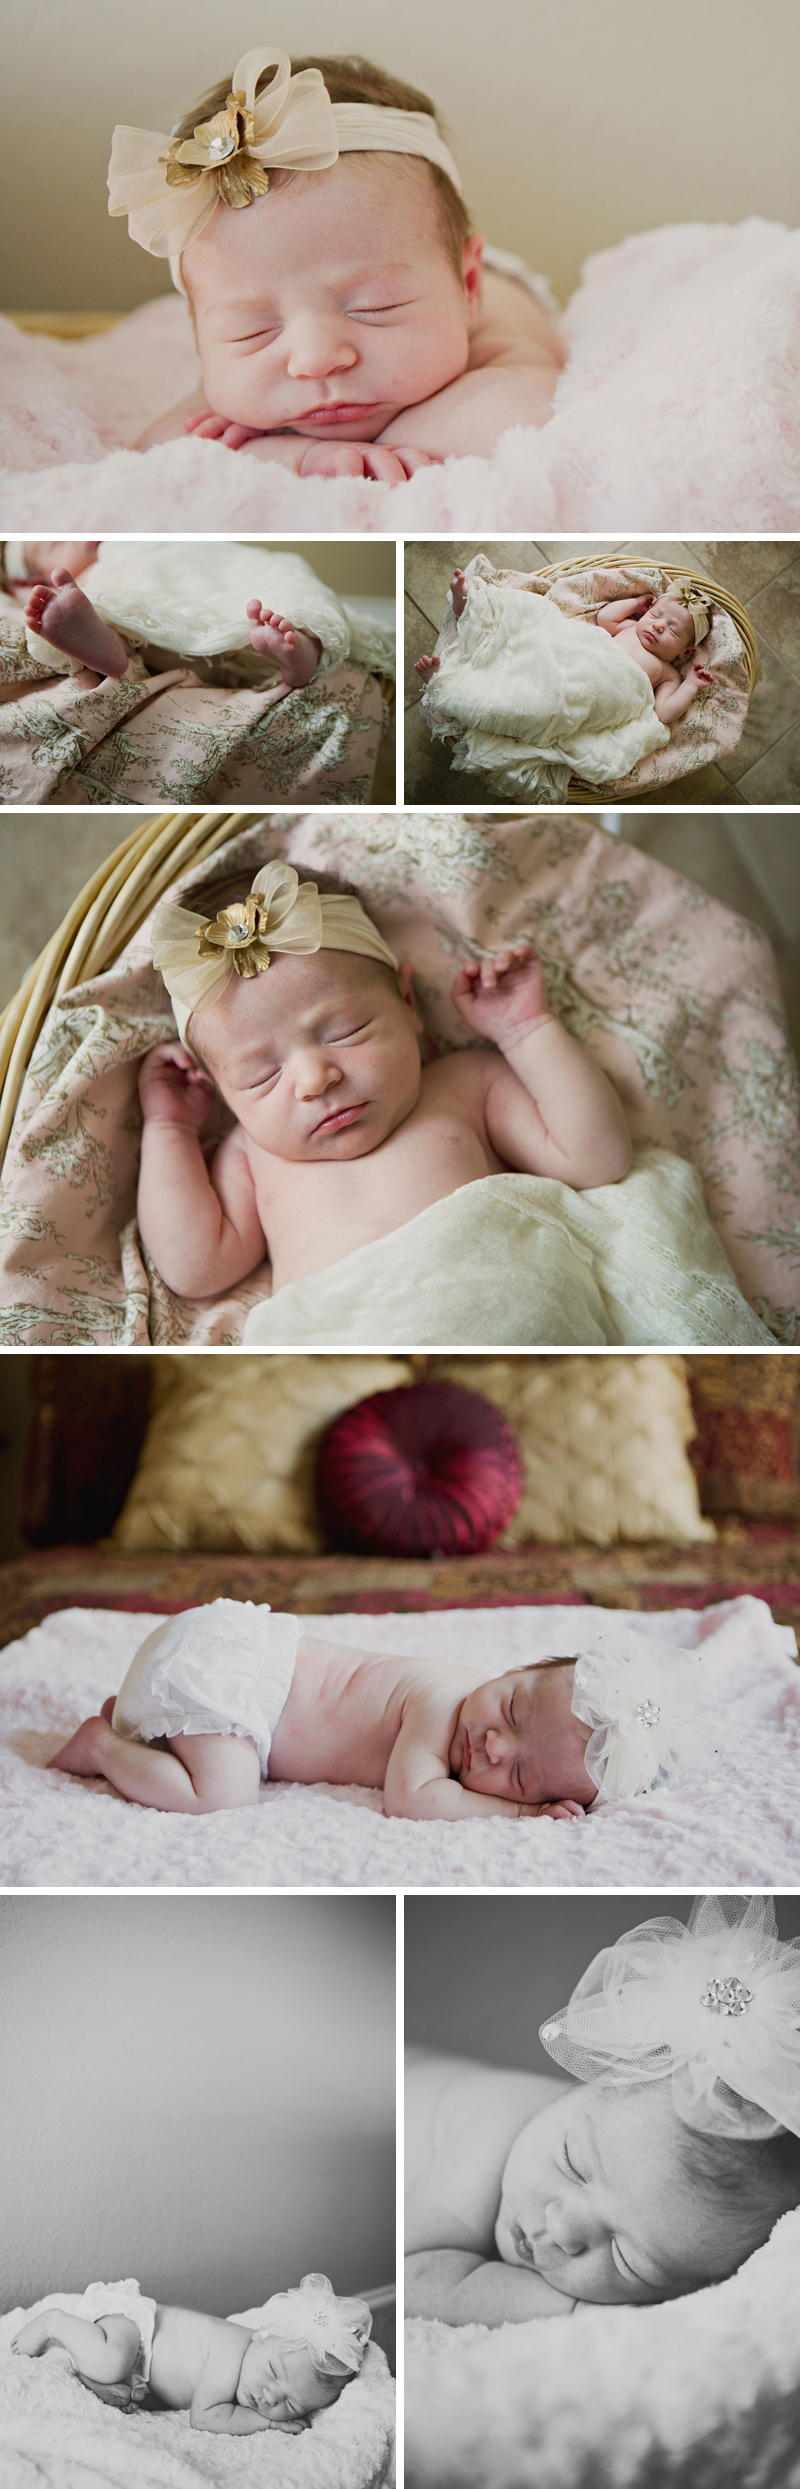 Dallas-Newborn-Photographerc007